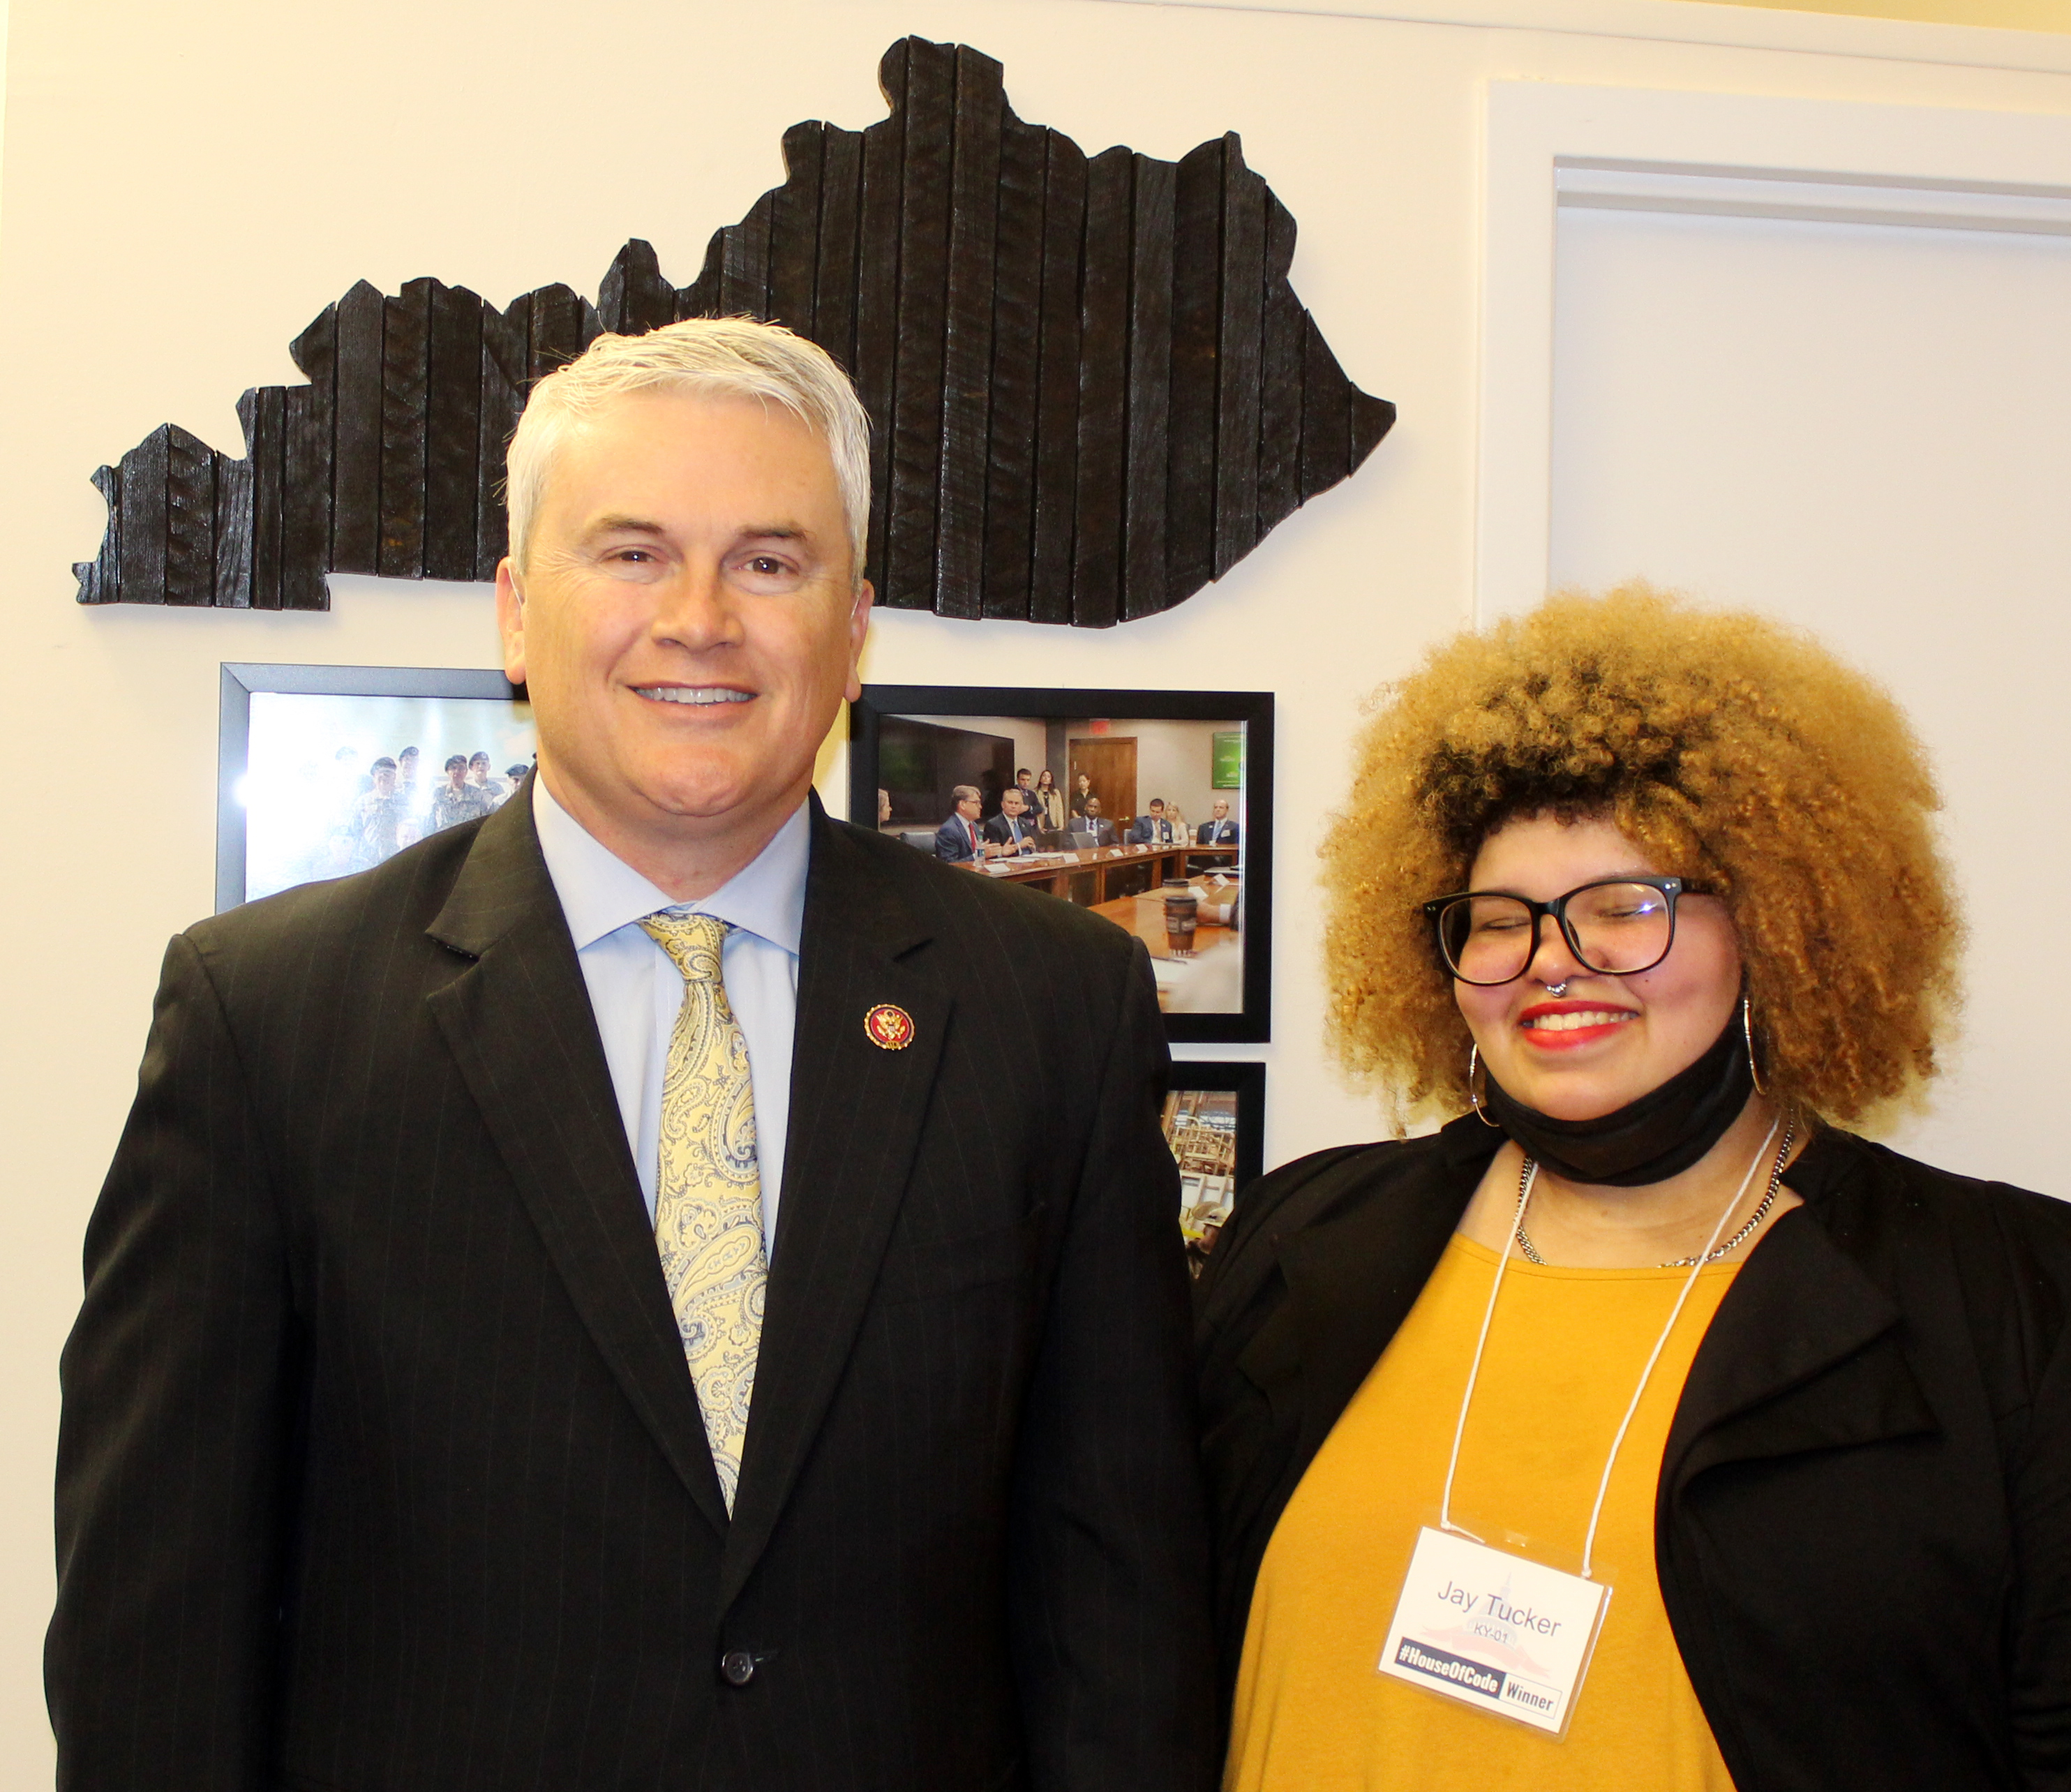 Campbellsville High School senior Jay Tucker was recently honored in Washington, D.C., for winning the First District Congressional App Challenge. She is pictured with U.S. Rep. James Comer, R-Ky., who sponsors the challenge.